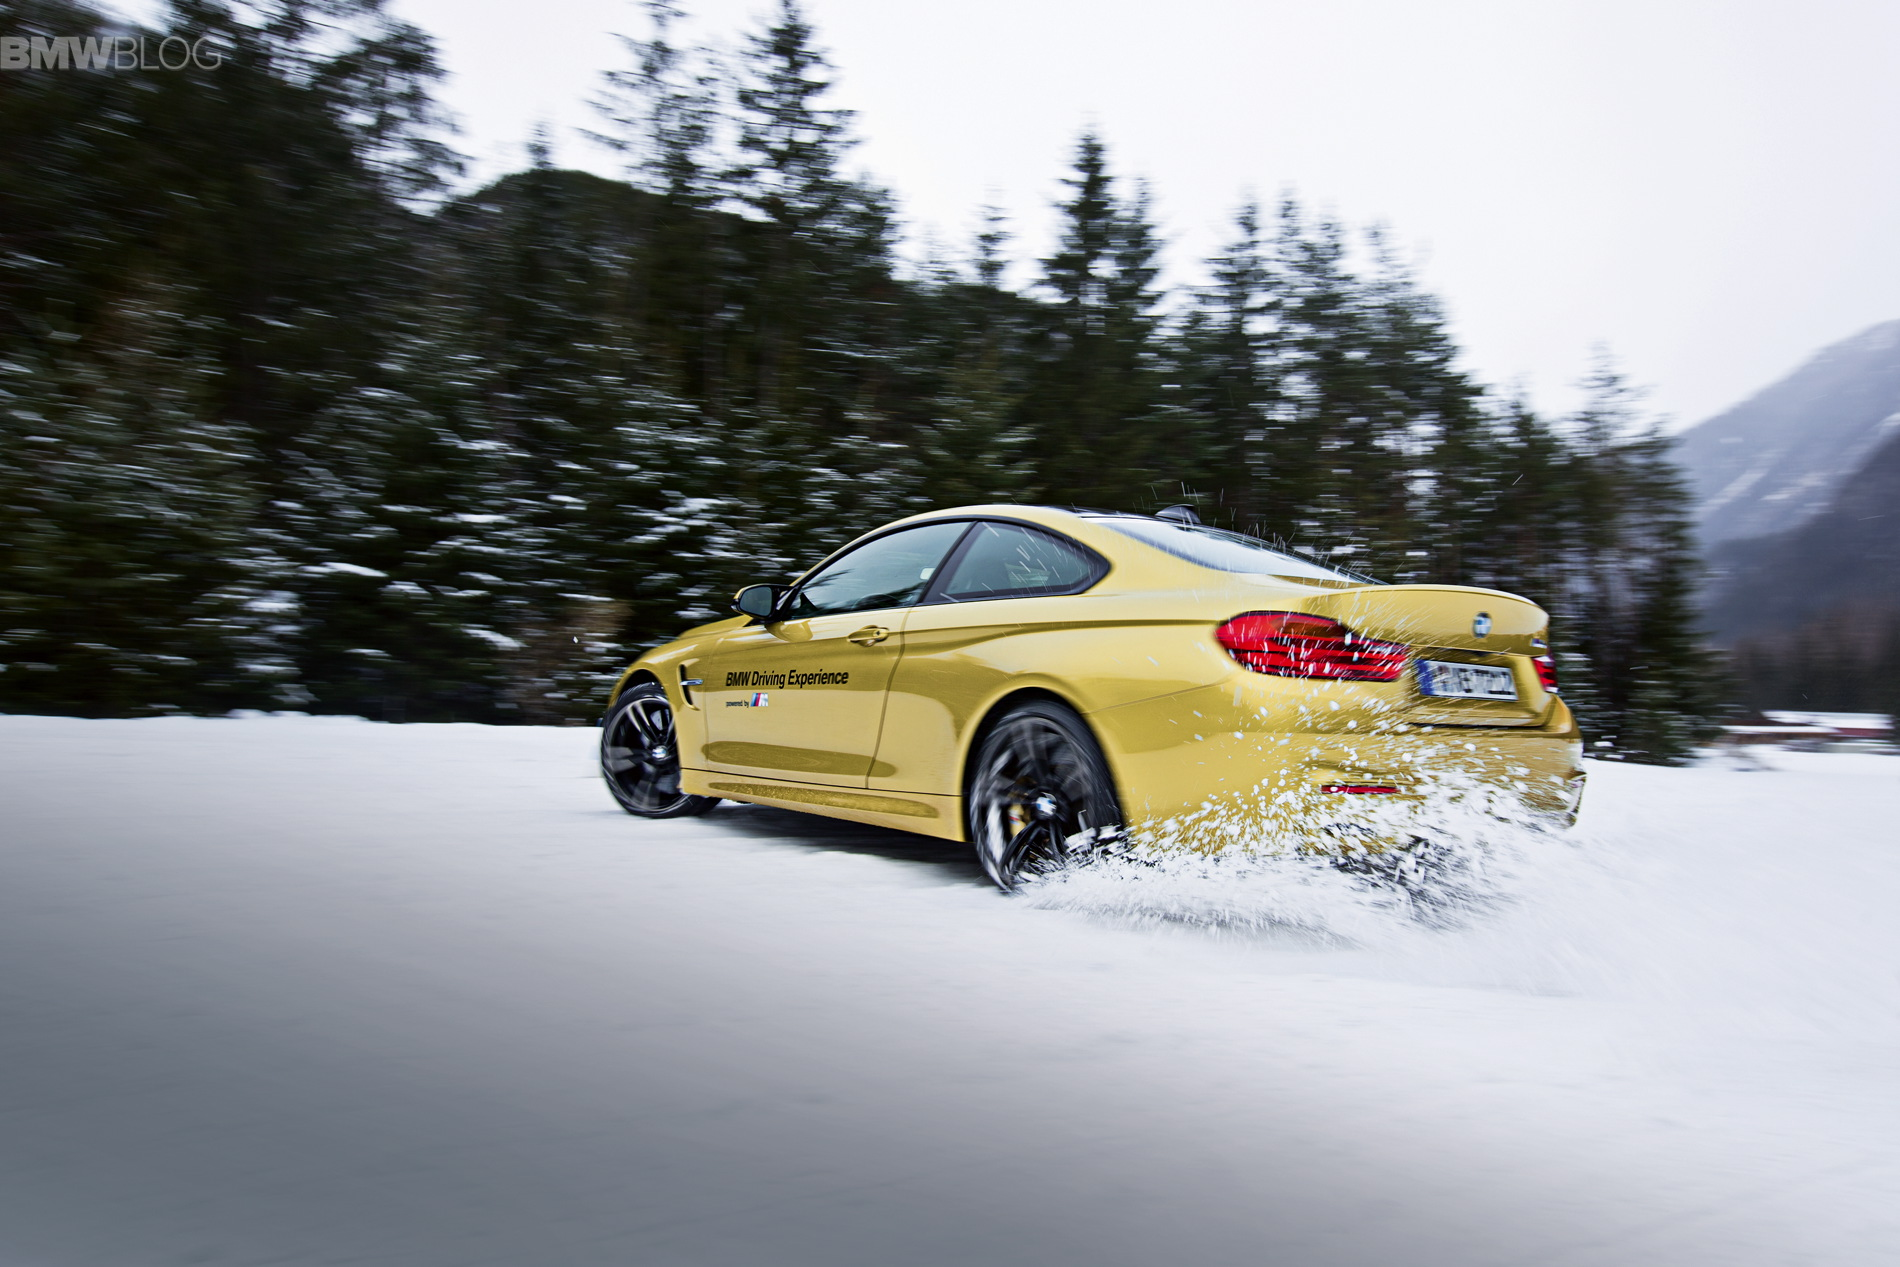 Best Snow Tires >> 25 years of the BMW Snow Experience in Sölden